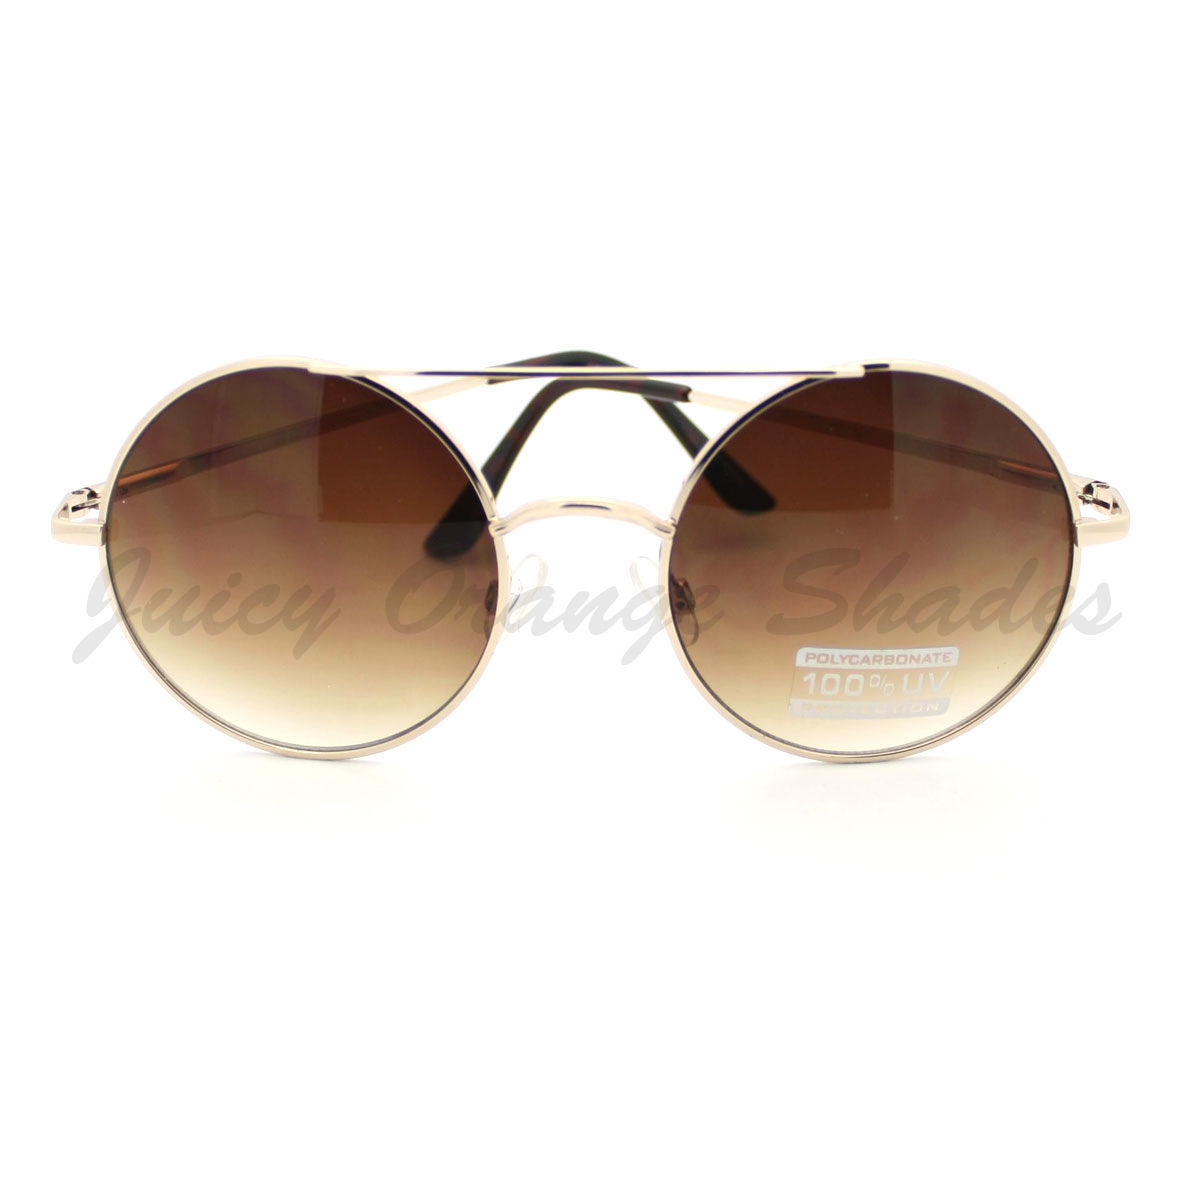 Womens Retro Fashion Sunglasses Round Double Bridge Metal Frame